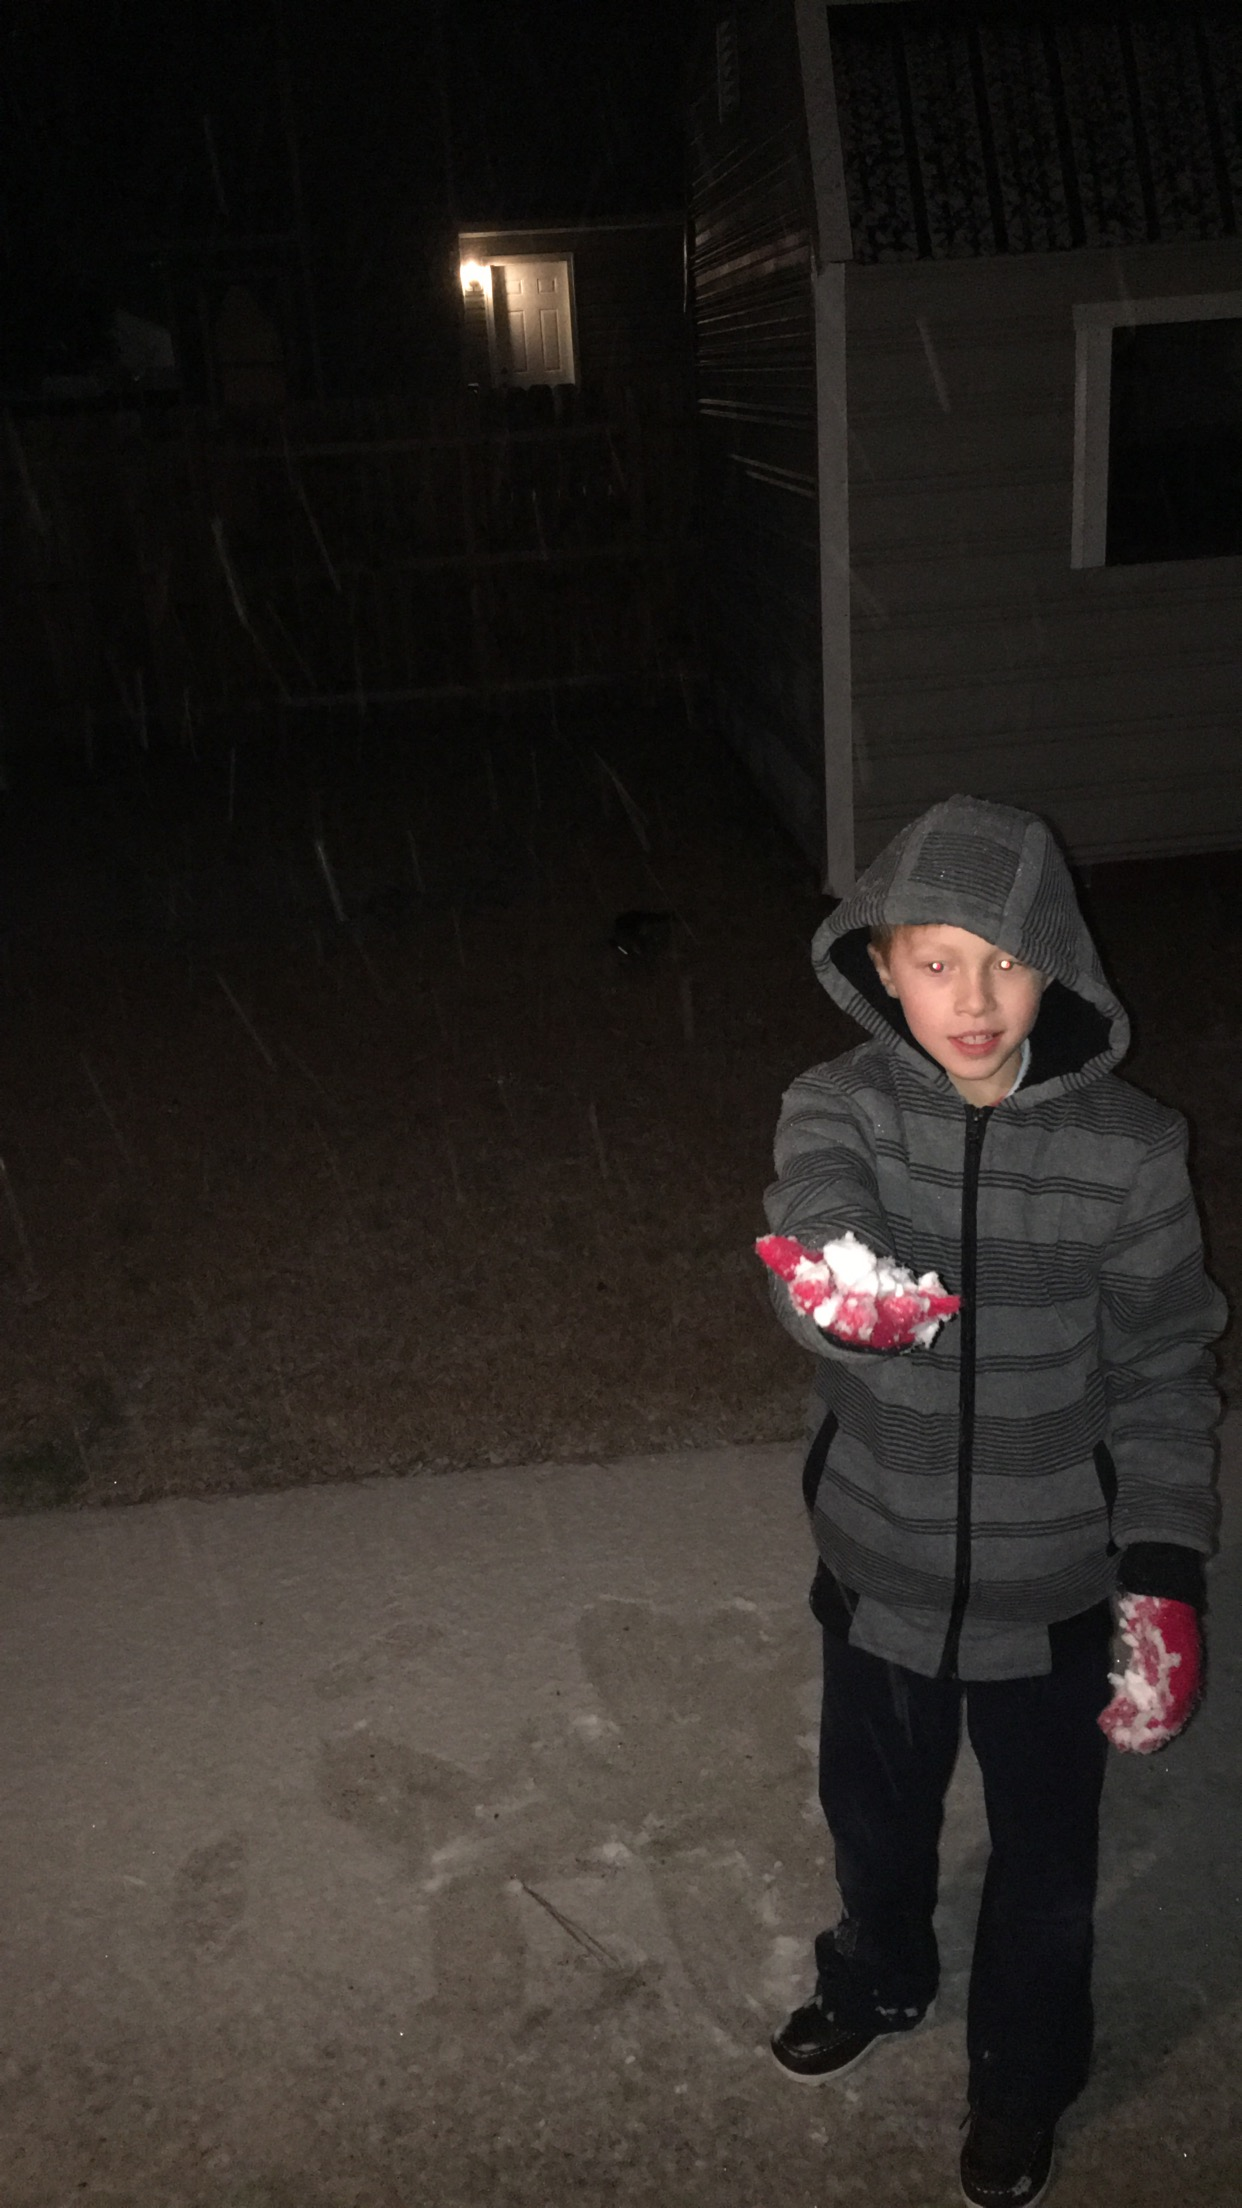 "<div class=""meta image-caption""><div class=""origin-logo origin-image none""><span>none</span></div><span class=""caption-text"">Snowing in Fayetteville. My son making the first snow ball! (Virginia Daubert - ABC11 Eyewitness)</span></div>"